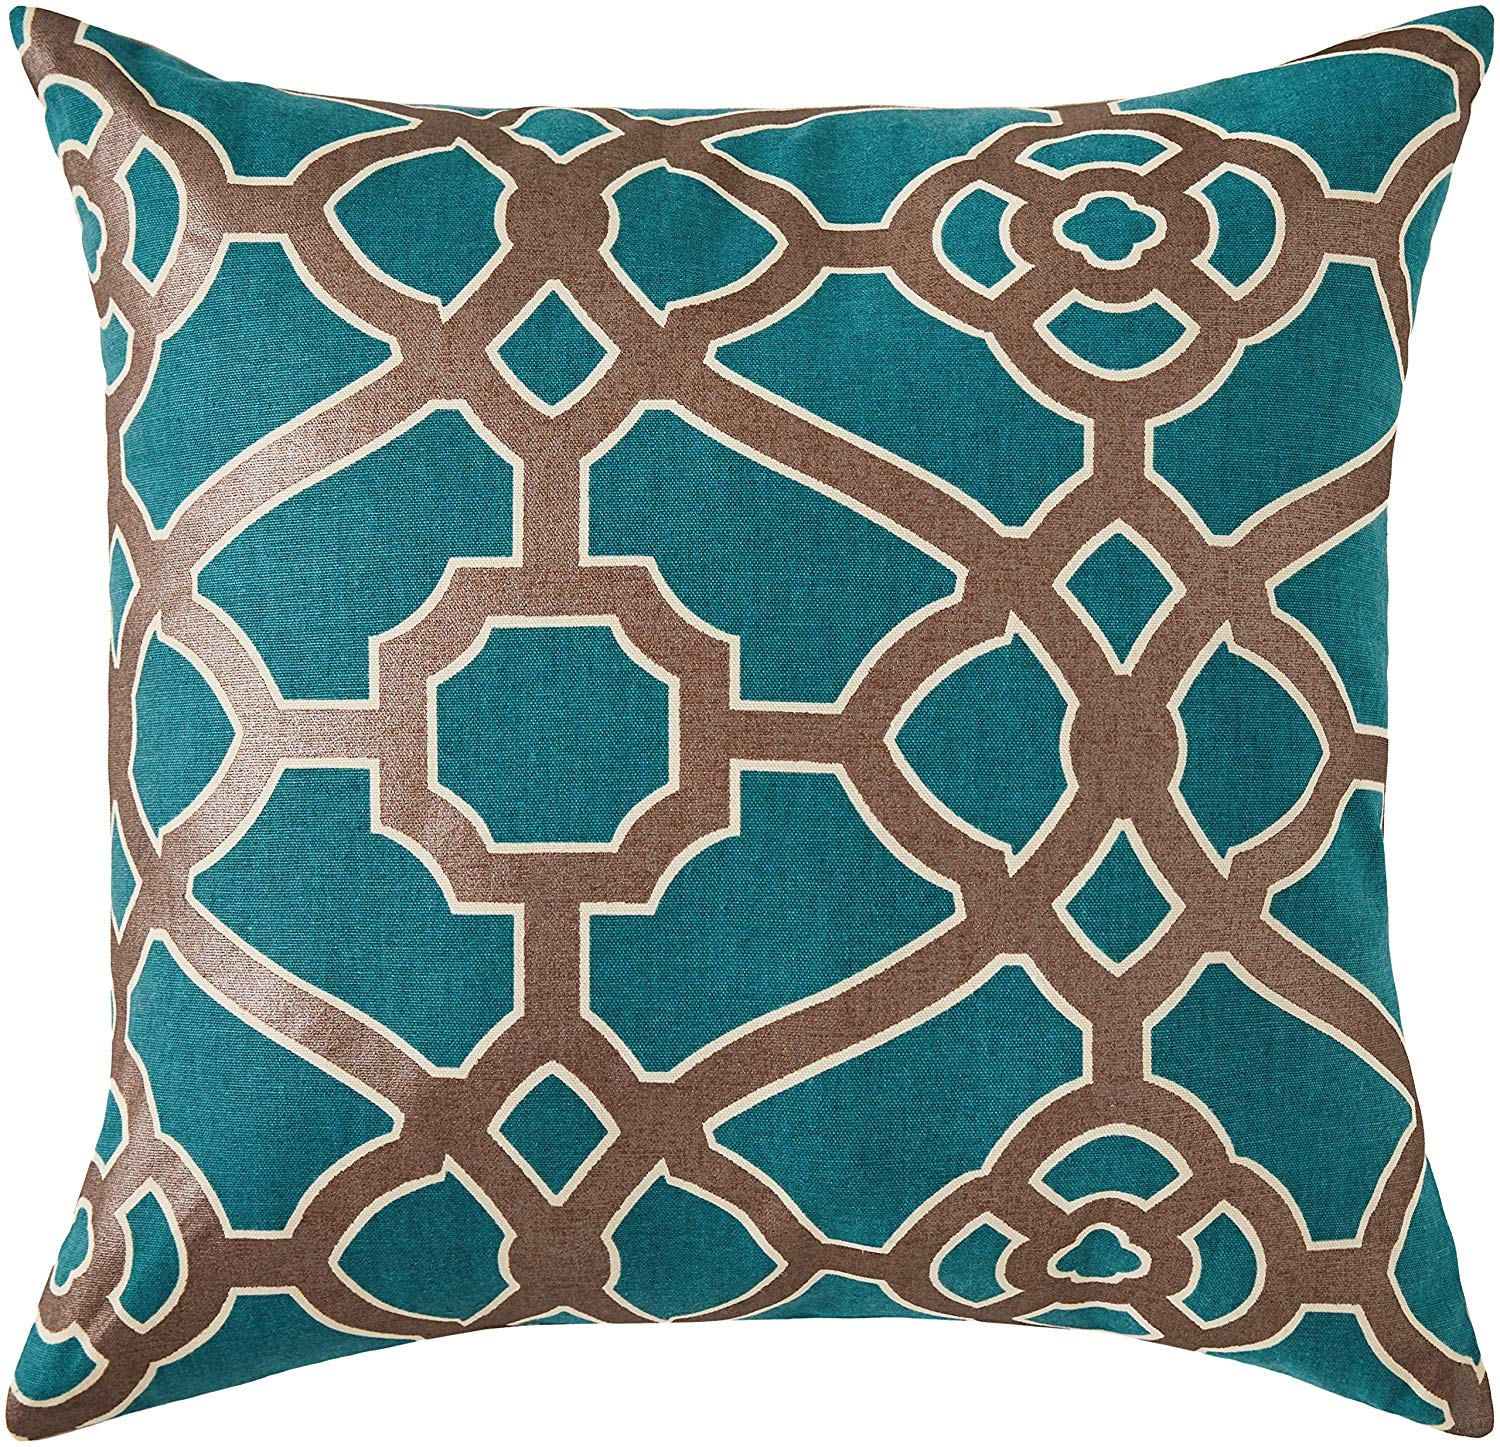 Ravenna Home Contemporary Geometric Pattern Throw Pillow - 20 x 20 Inch, Teal and Bronze